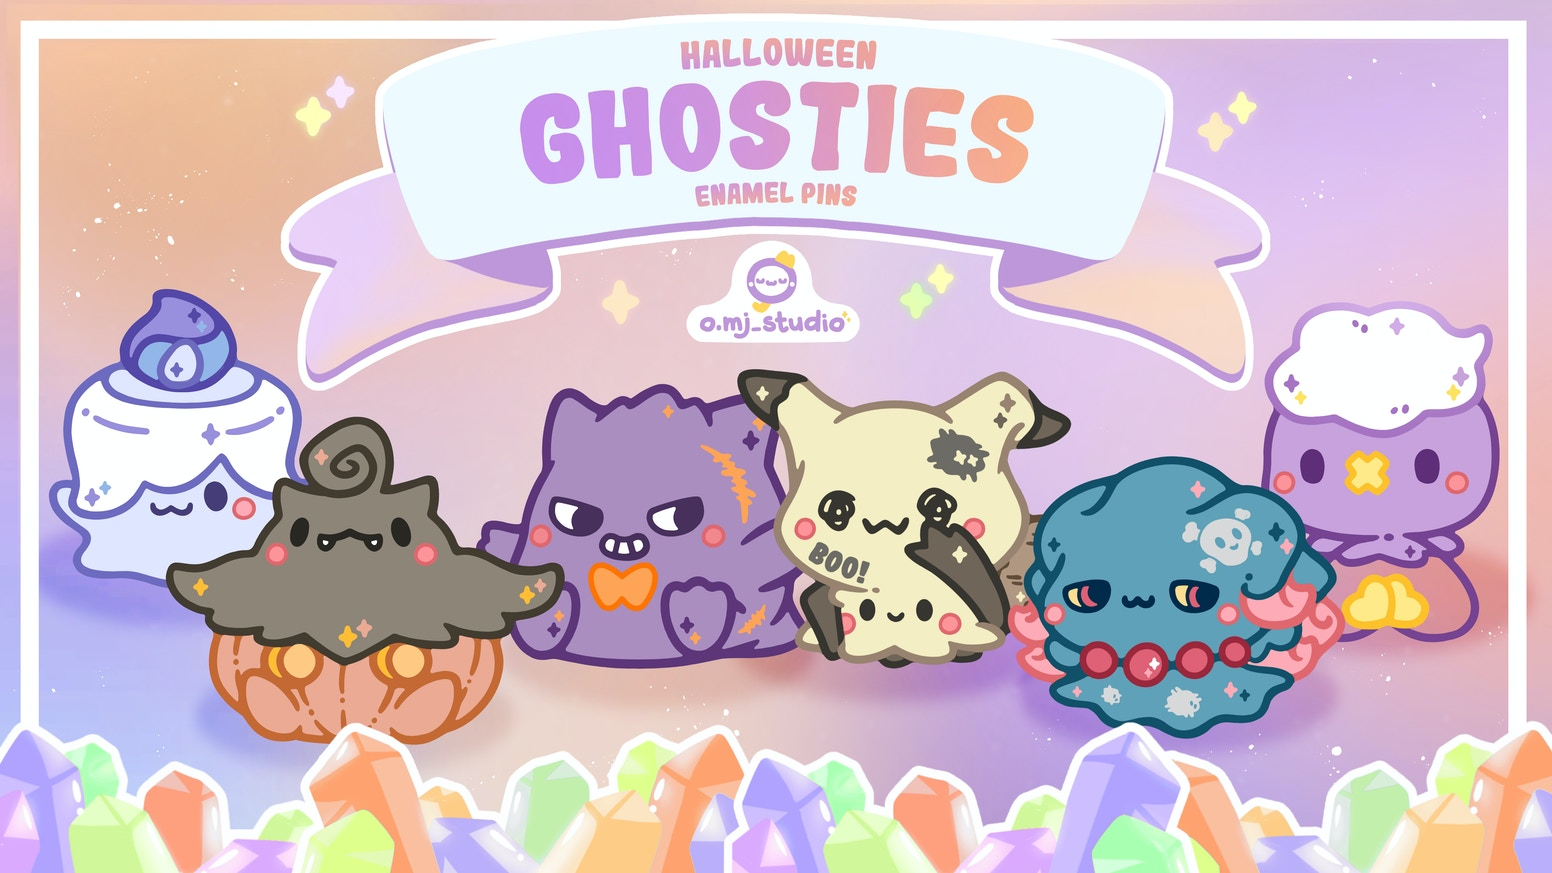 A collection of Hard Enamel Pins featuring spooky and cute Halloween Ghosties to go trick-or-treating with!